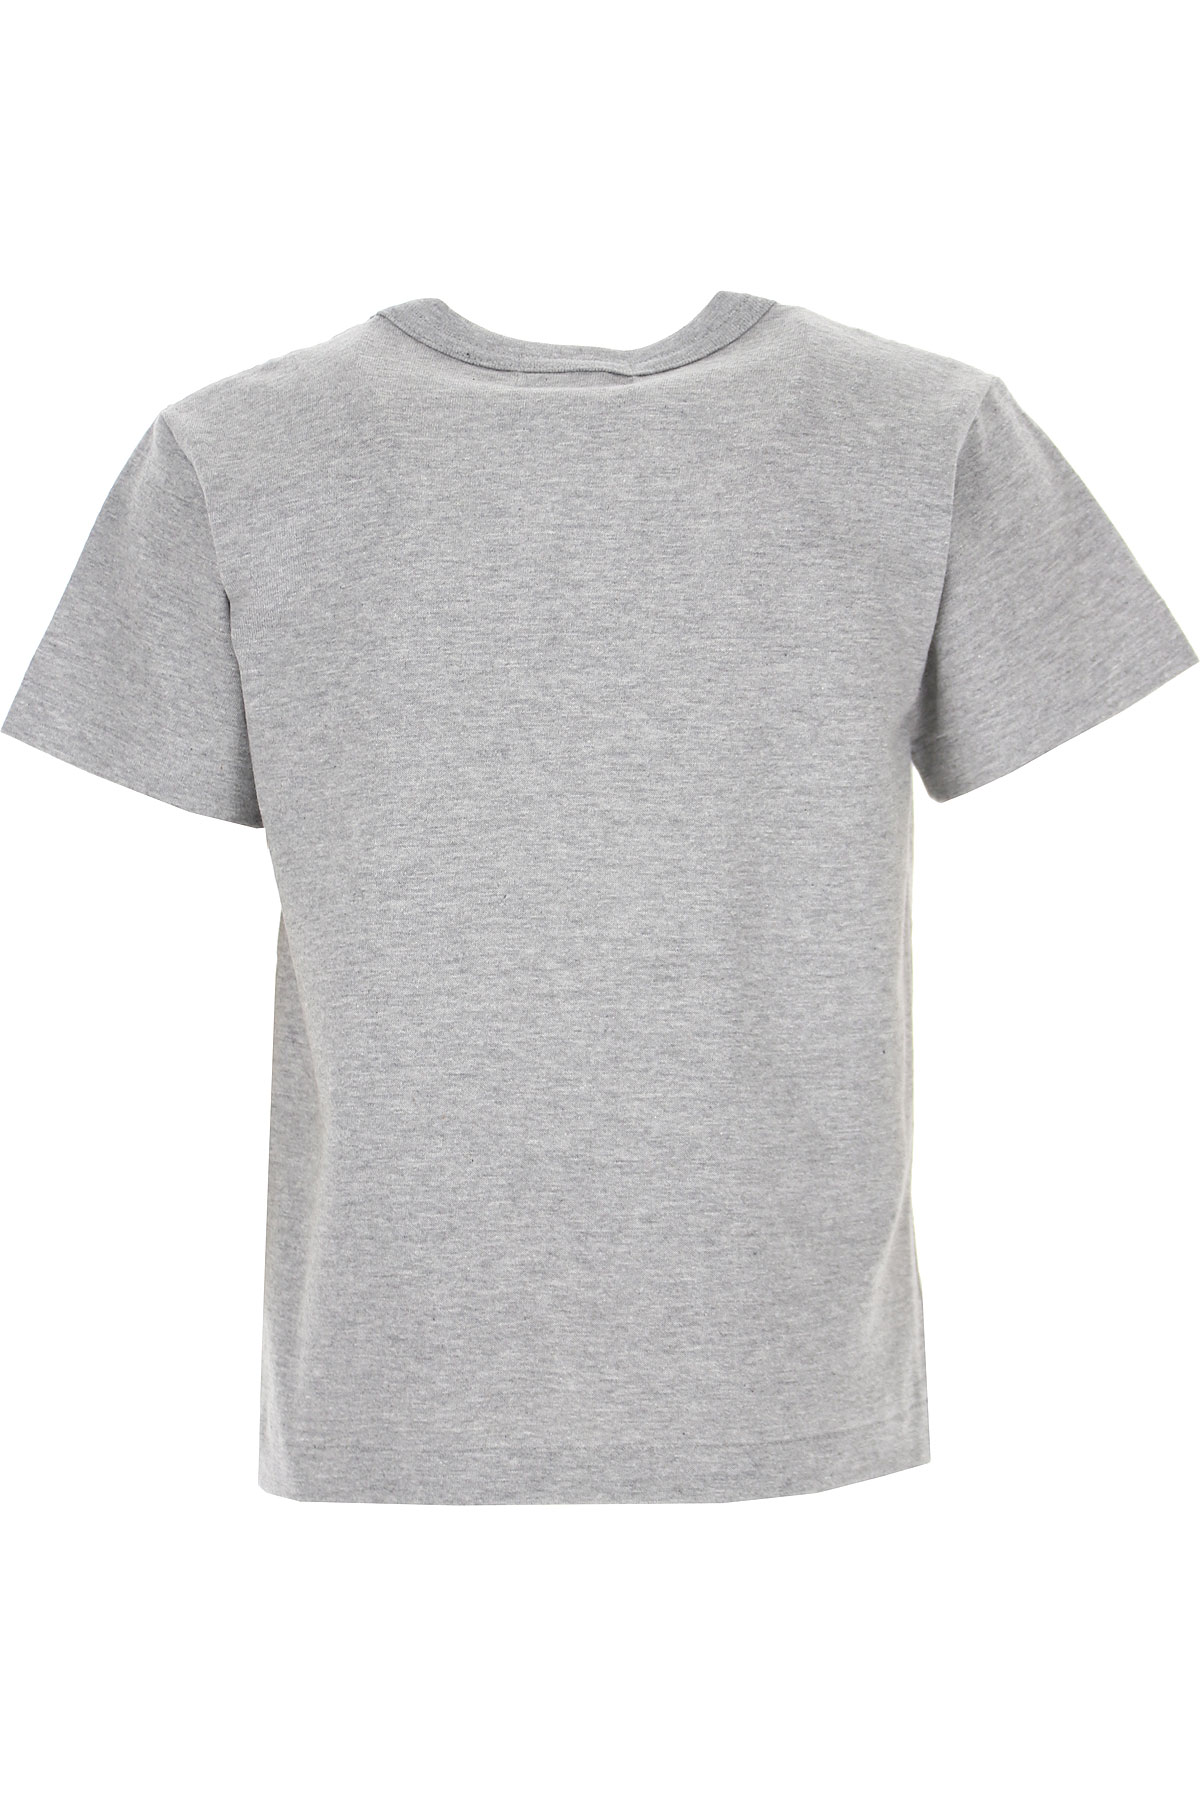 Comme des Garcons Kids T-Shirt for Girls On Sale, Grey, Cotton, 2019, 2Y 4Y 6Y